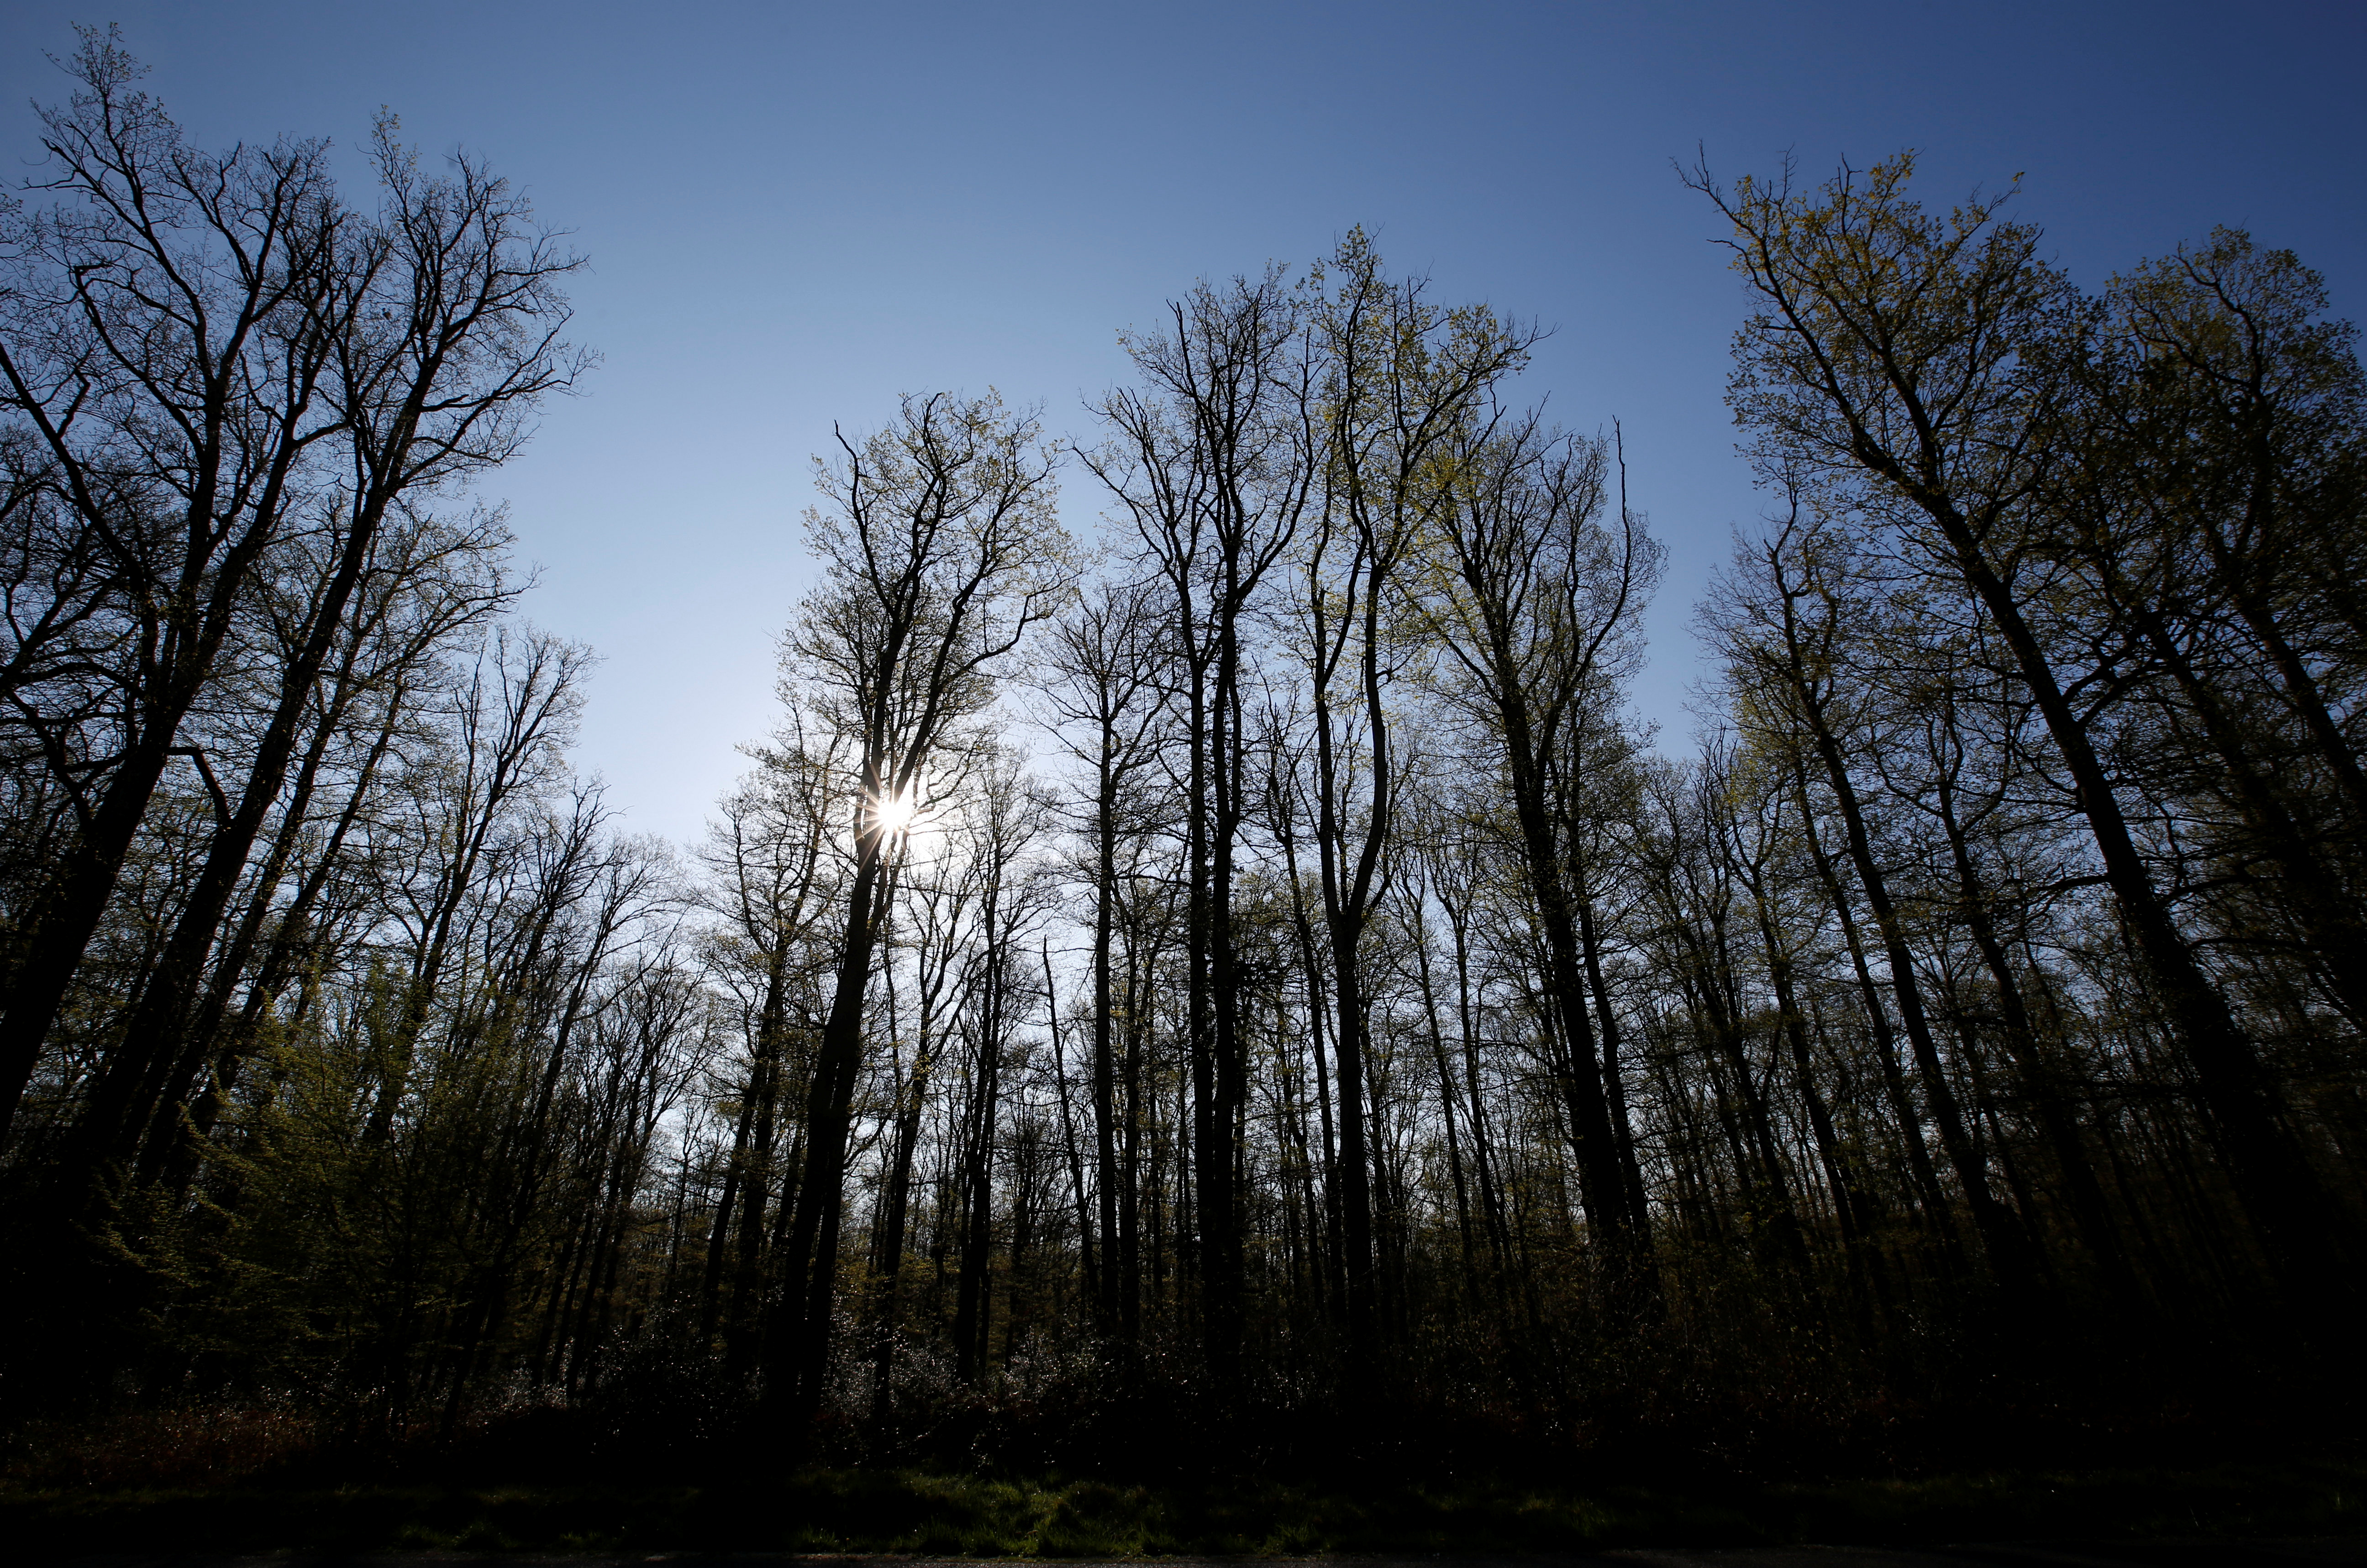 Oak trees are pictured in Chateauroux forest near Ardentes, central France, days after a massive fire devastated the roof's wooden beam structure of the gothic Paris' Notre-Dame Cathedral, April 19, 2019. REUTERS/Regis Duvignau/Files